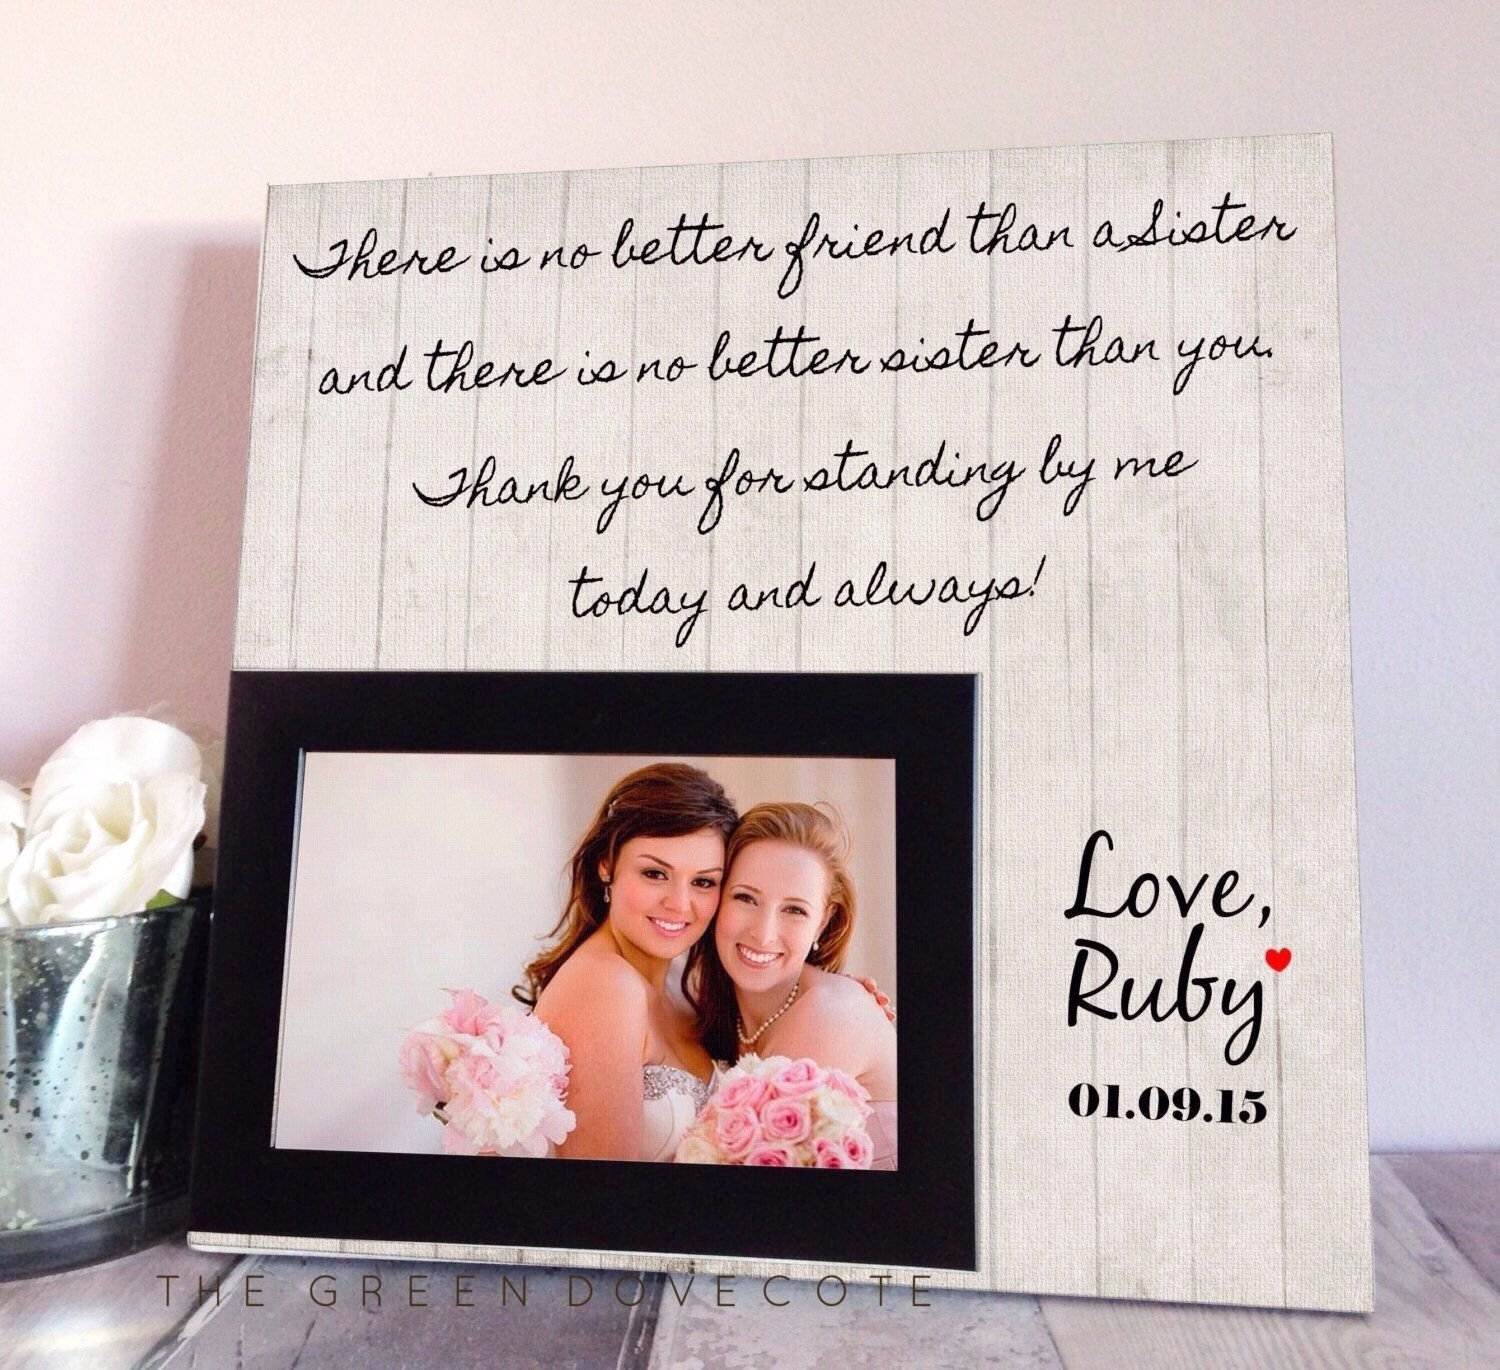 10 Most Recommended Wedding Gift Ideas For Sister cool wedding gift ideas for sister you can consider wedding 2020